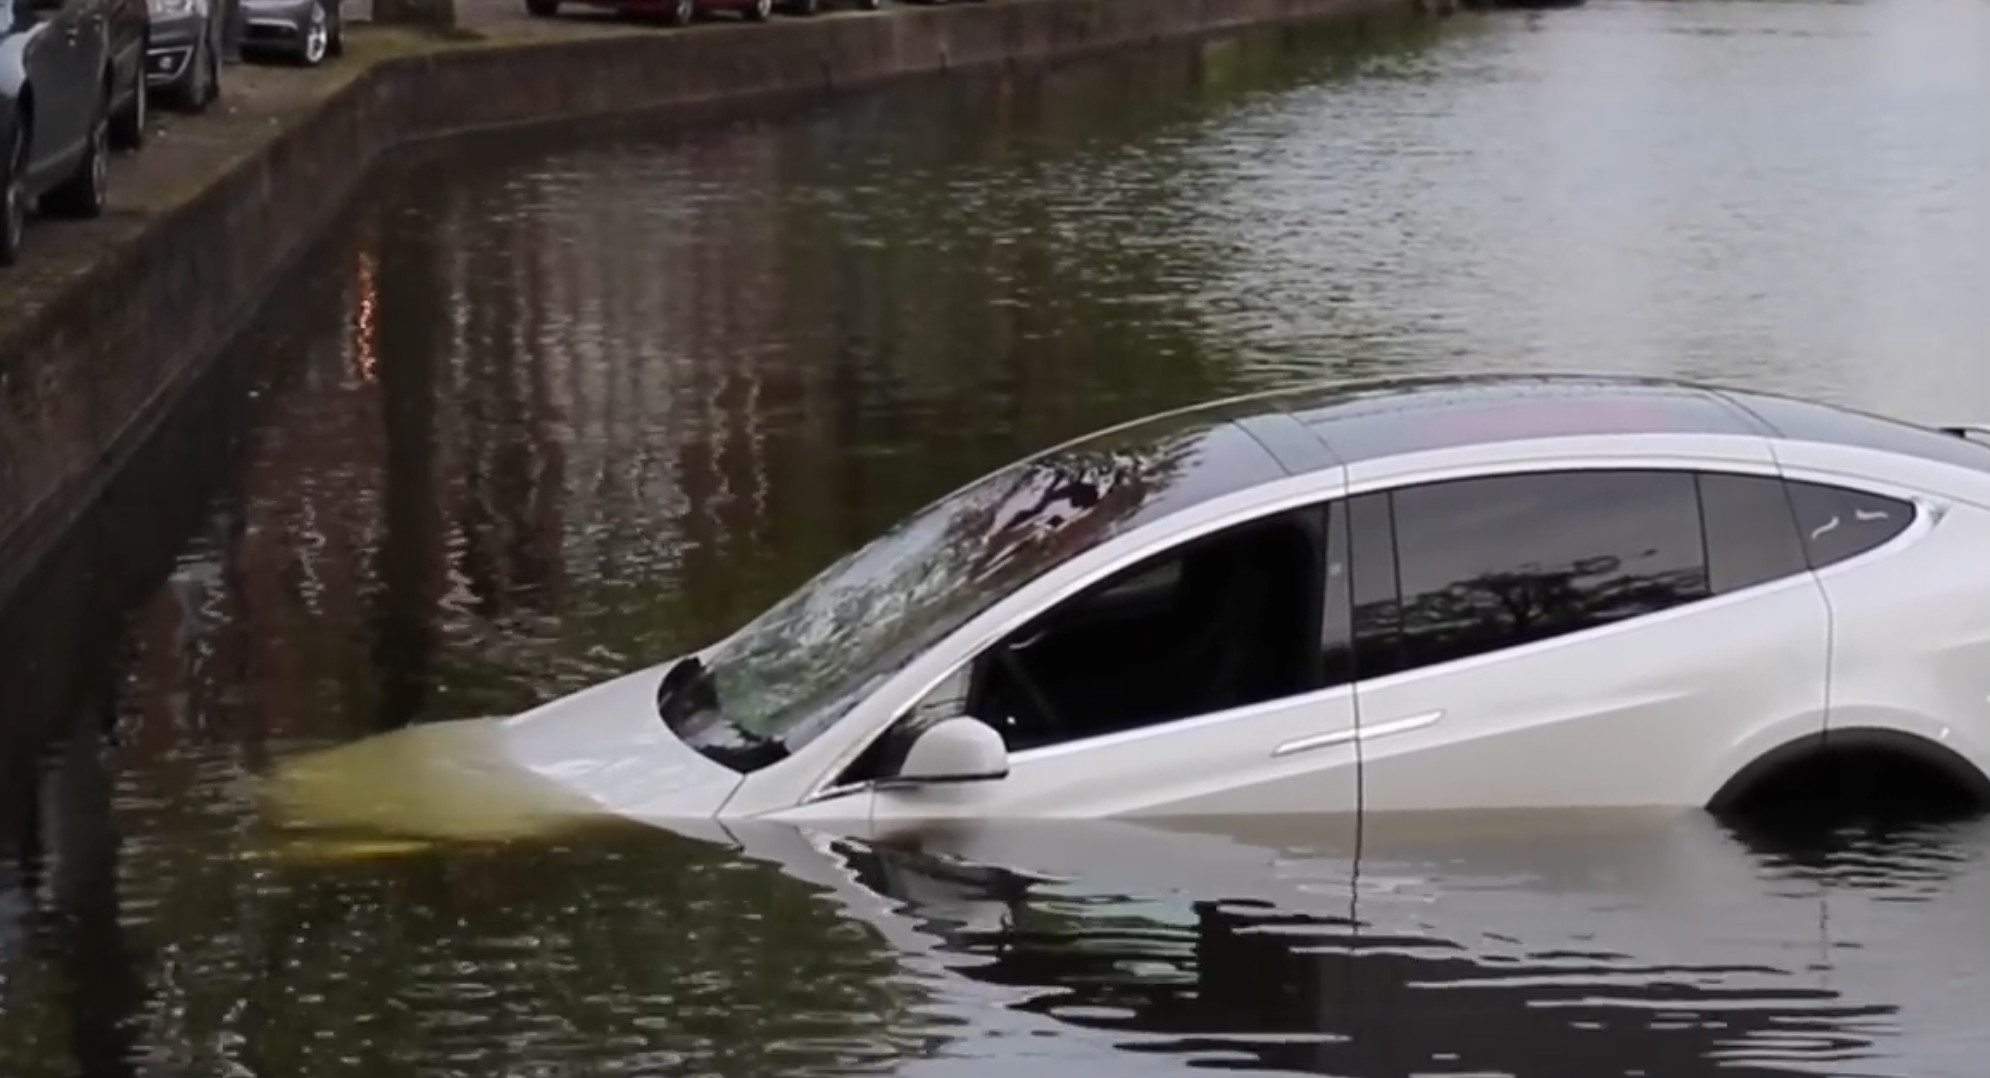 Model X sinks dutch canal 1 [Credit: Flashphoto NL/YouTube]